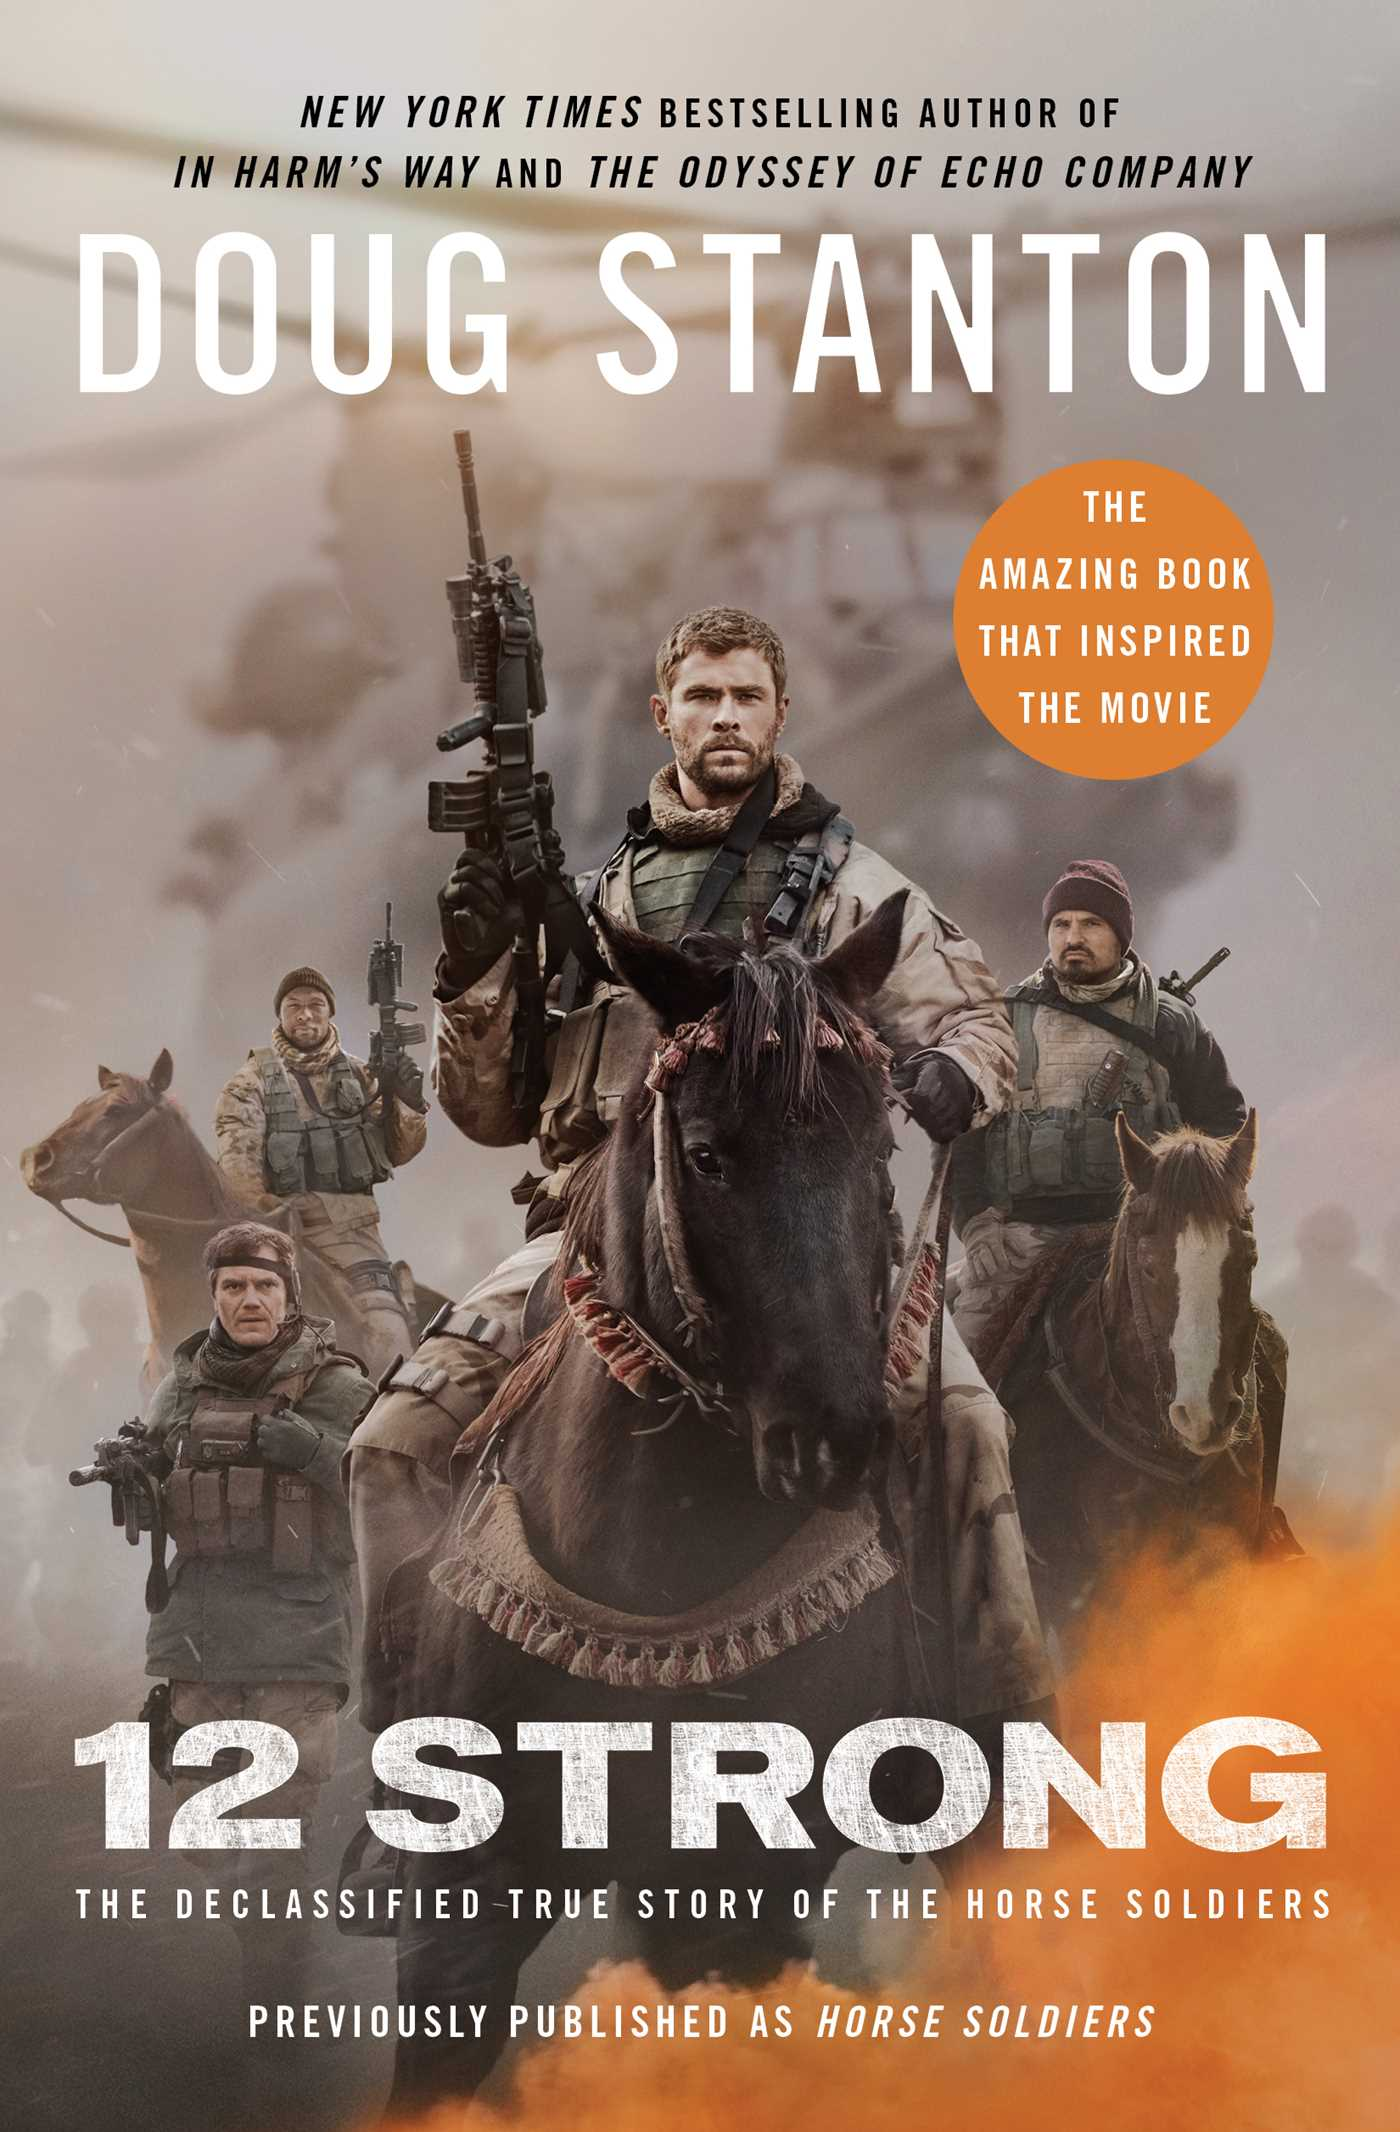 REVIEW: 12 STRONG by Doug Stanton | Off the Shelf